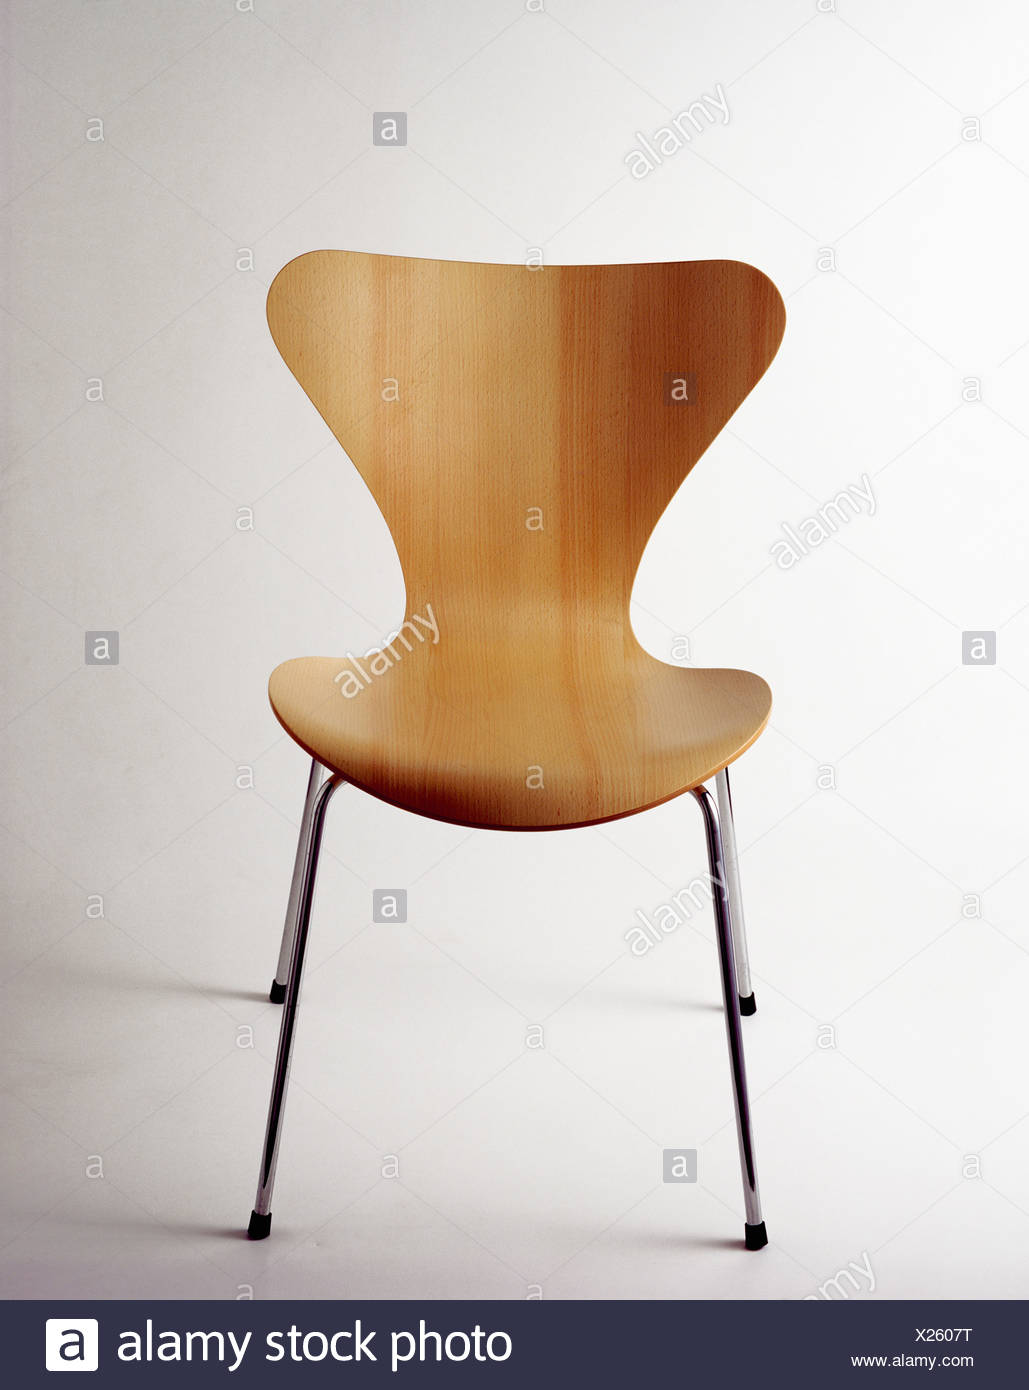 Arne Jacobsen Ameise ant chair by arne jacobsen stockfotos ant chair by arne jacobsen